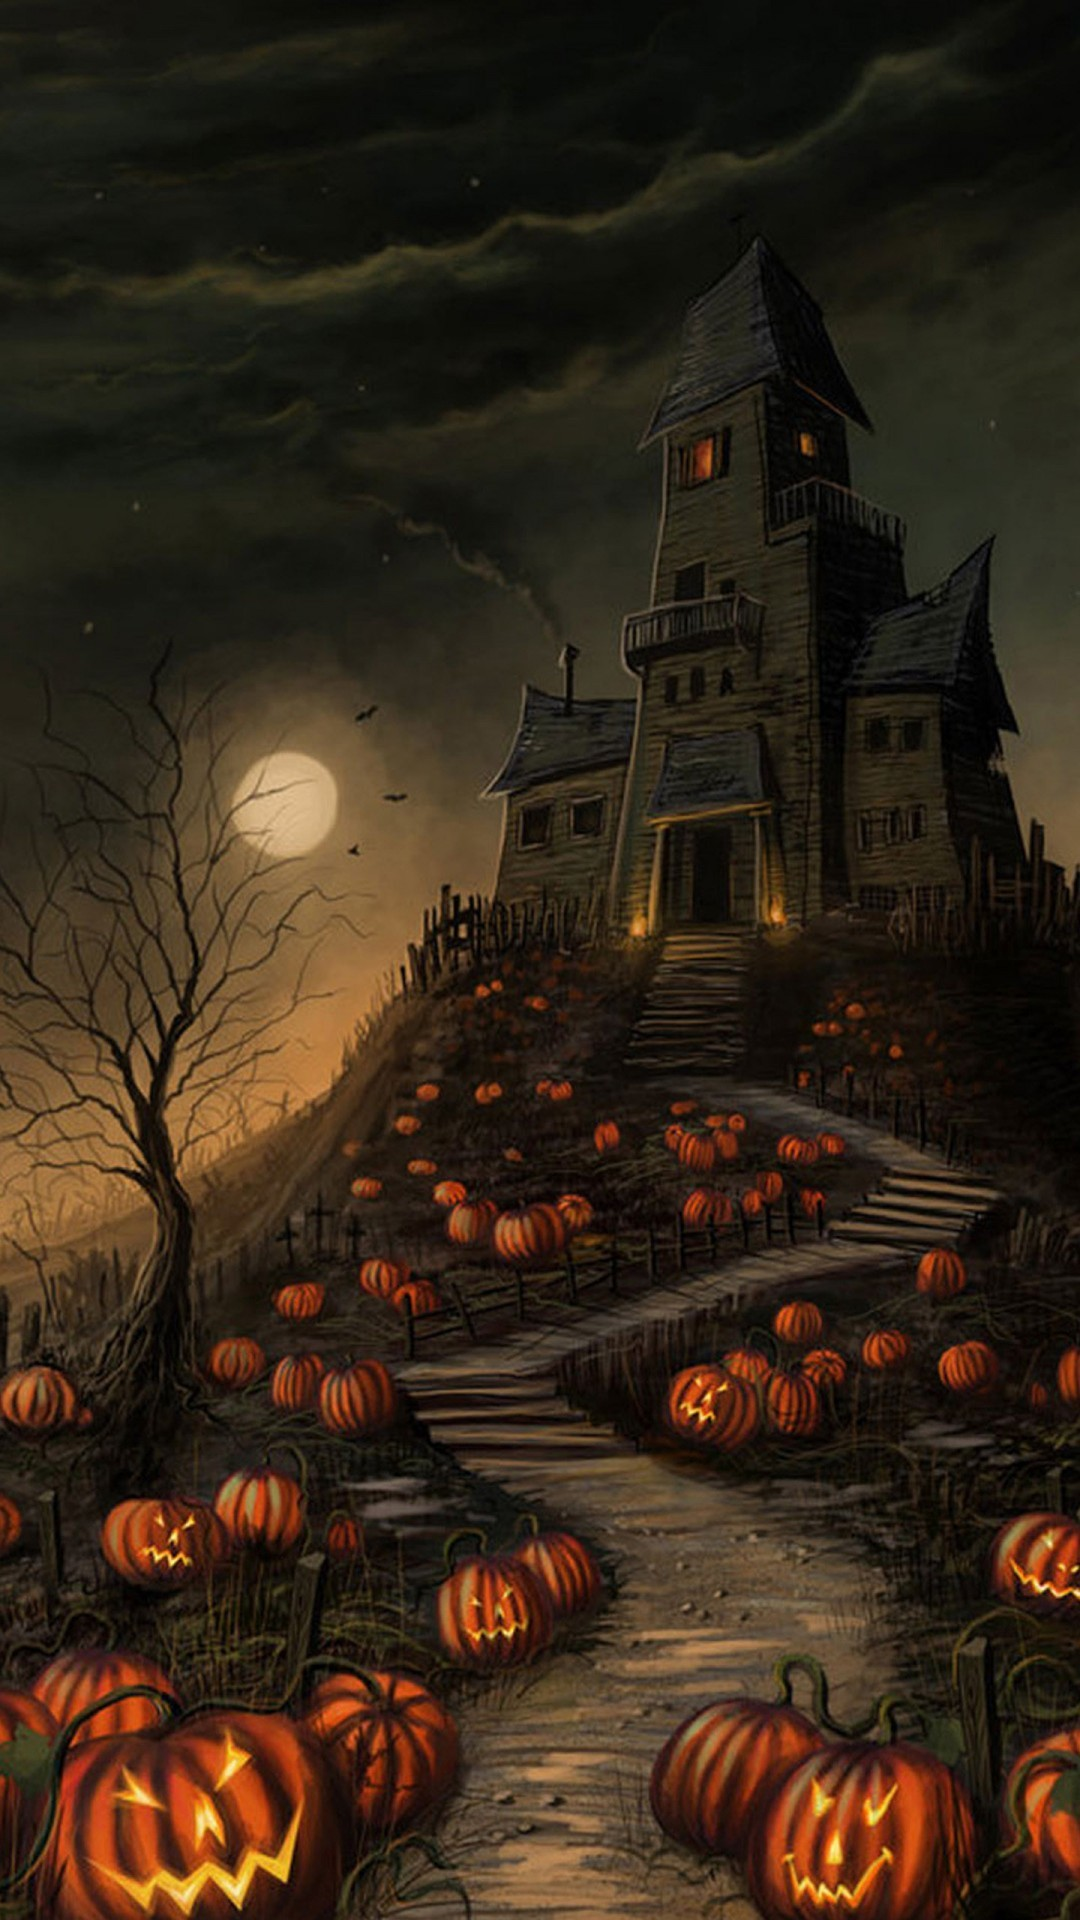 Wonderful Wallpaper Halloween Iphone 6s Plus - halloween-hunted-castle-wallpaper-background-1080x1920  2018_628354.jpg